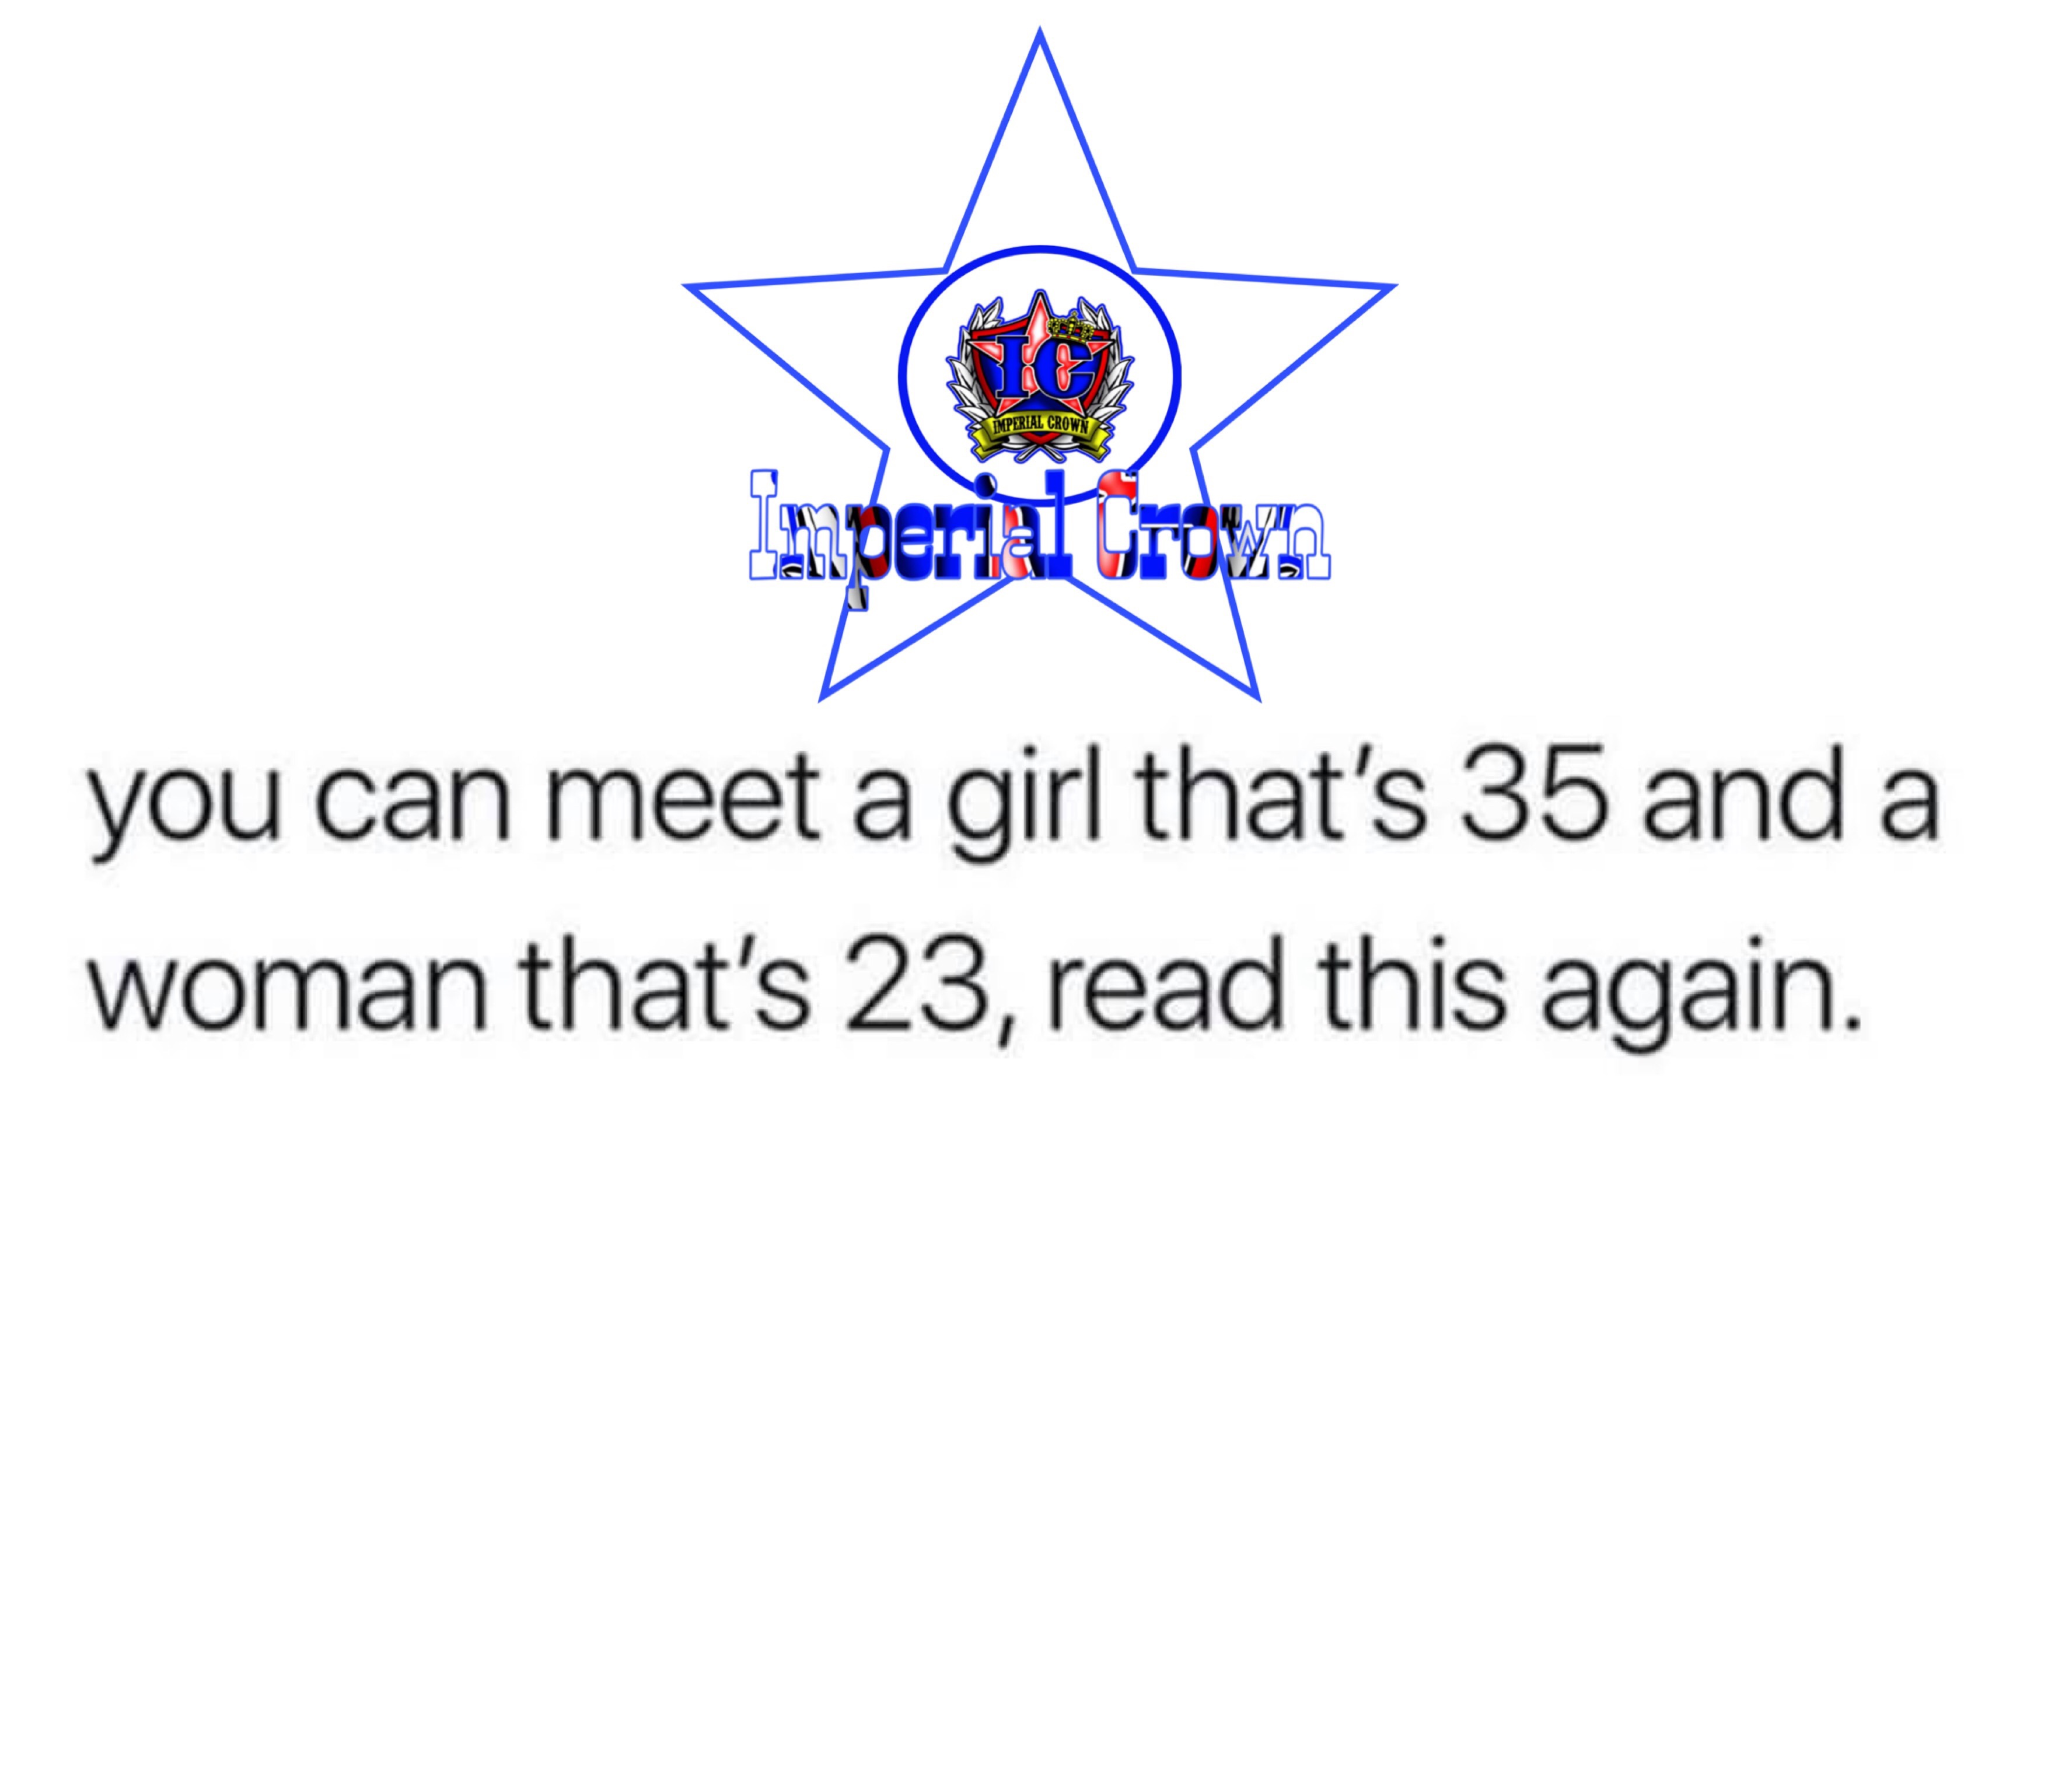 You can meet a girl thats 35 and a woman thats 23 read this again